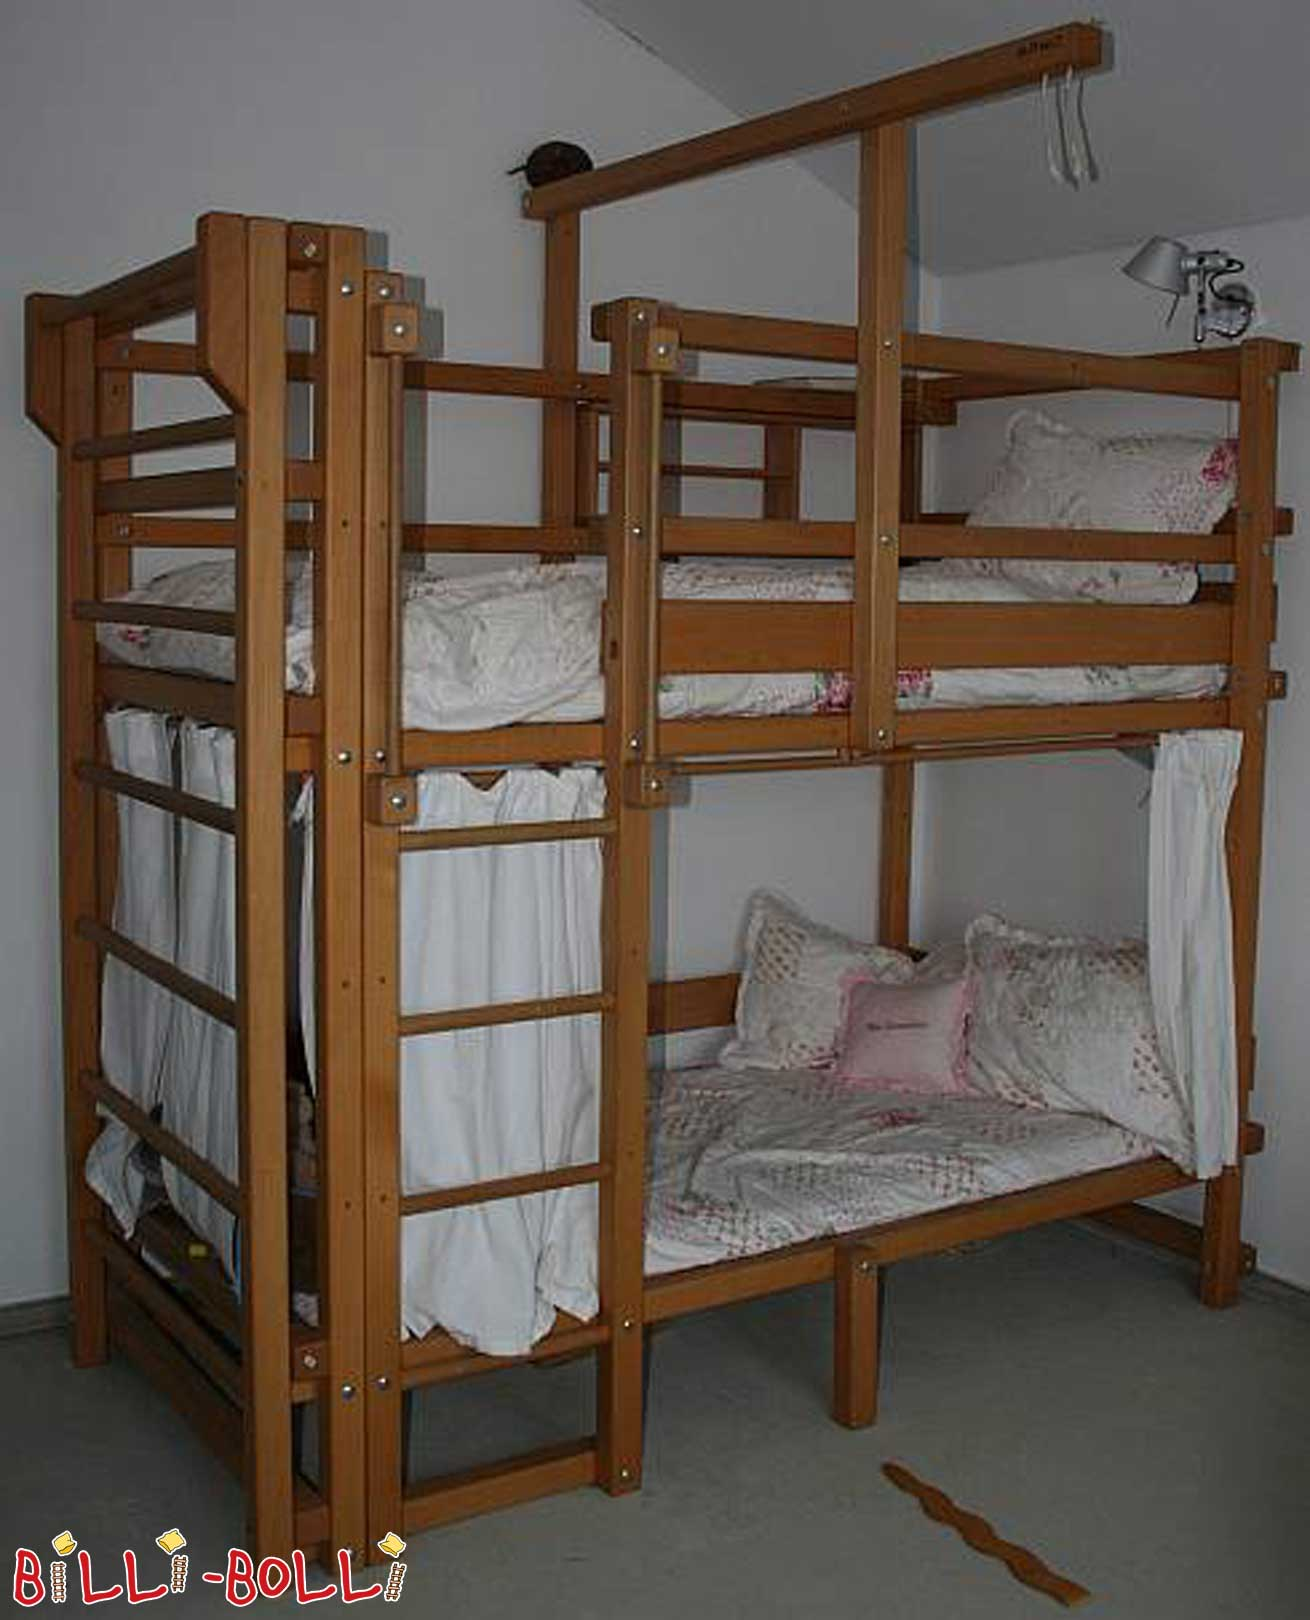 secondhand seite 131 billi bolli kinderm bel. Black Bedroom Furniture Sets. Home Design Ideas